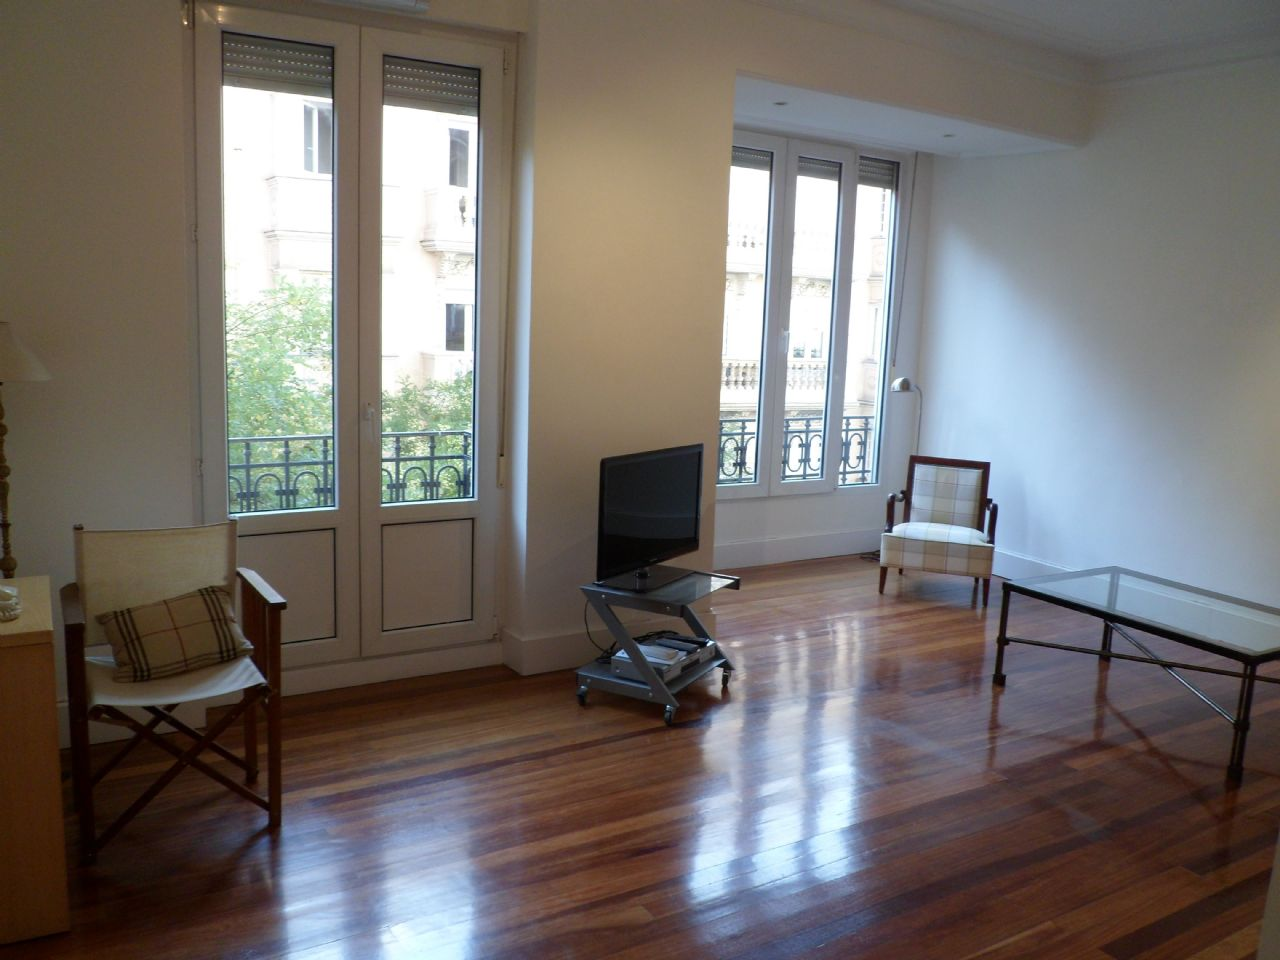 Flat in Madrid, Recoletos / Retiro / Goya, for rent